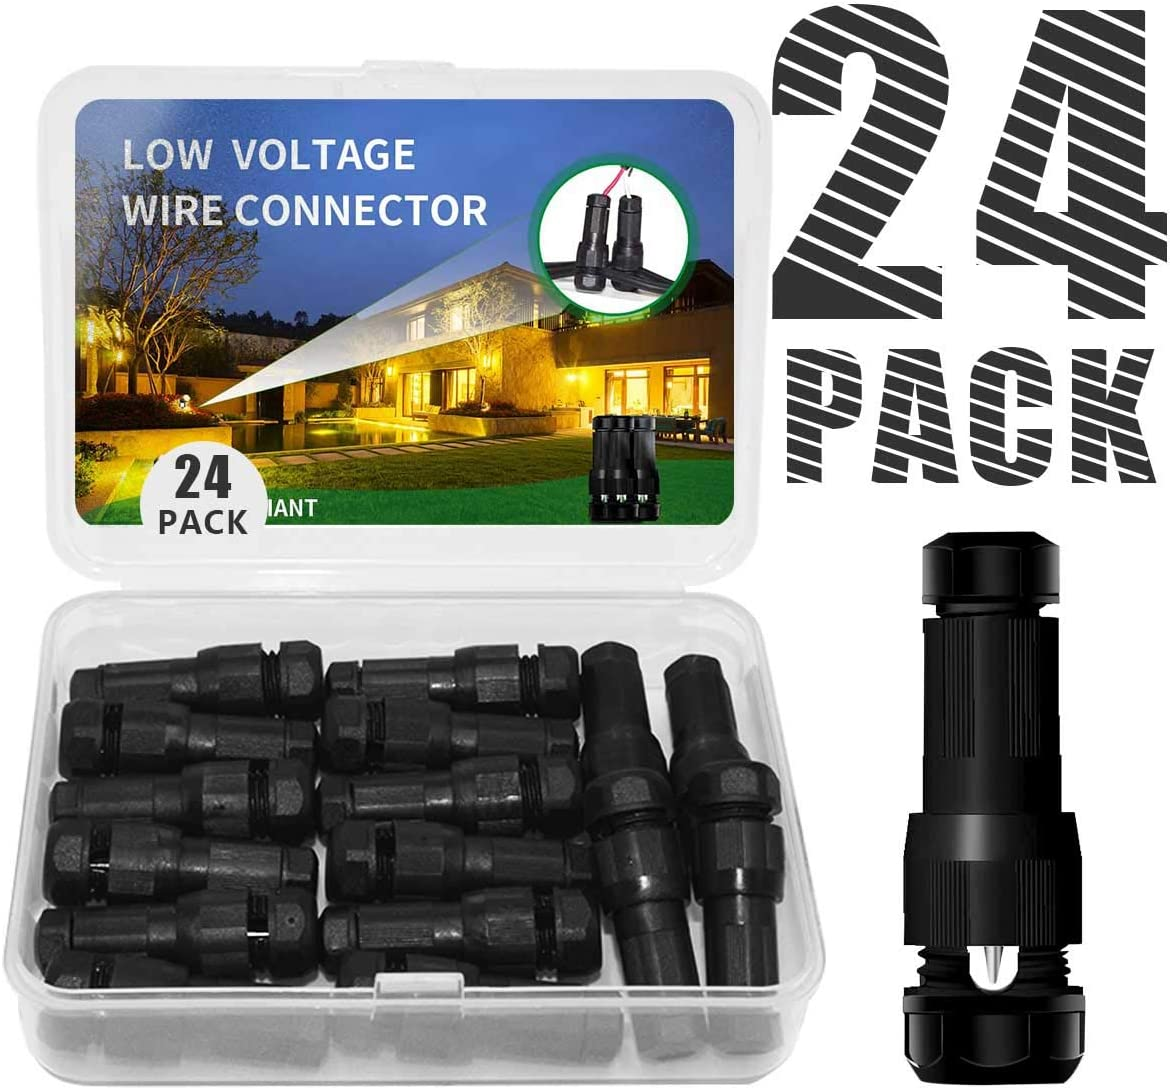 Hypergiant Fastlock Twist Low Voltage Wire Connector 24 Pack,landscape lighting connector For 12 14 16 Gauge Cable,outdoor lights connector for Garden Path Yard Lights Work for Malibu Paradise Moonray